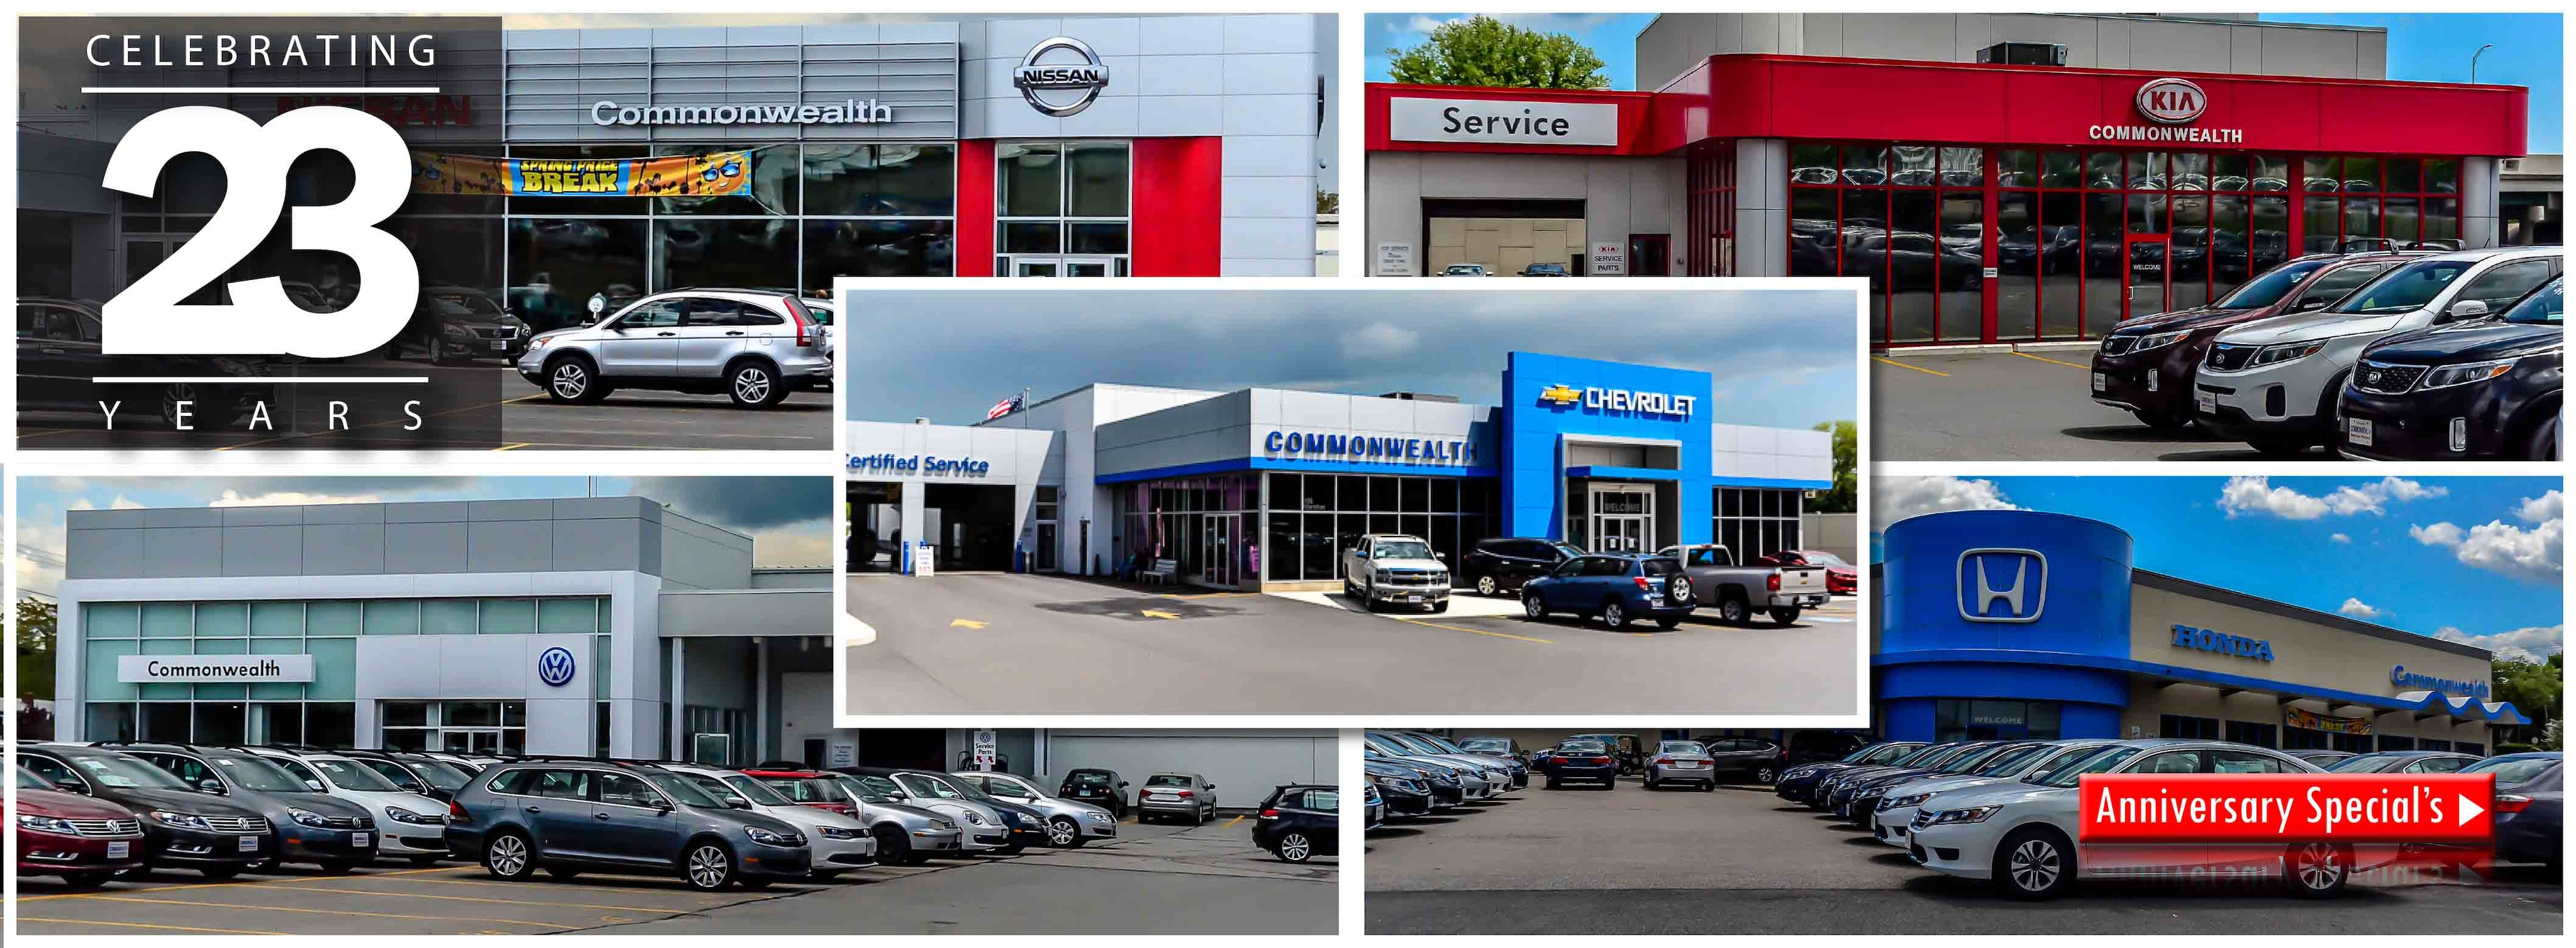 Commonwealth Motors New Chevrolet Kia Honda Volkswagen Nissan Dealership In Lawrence Ma 01841